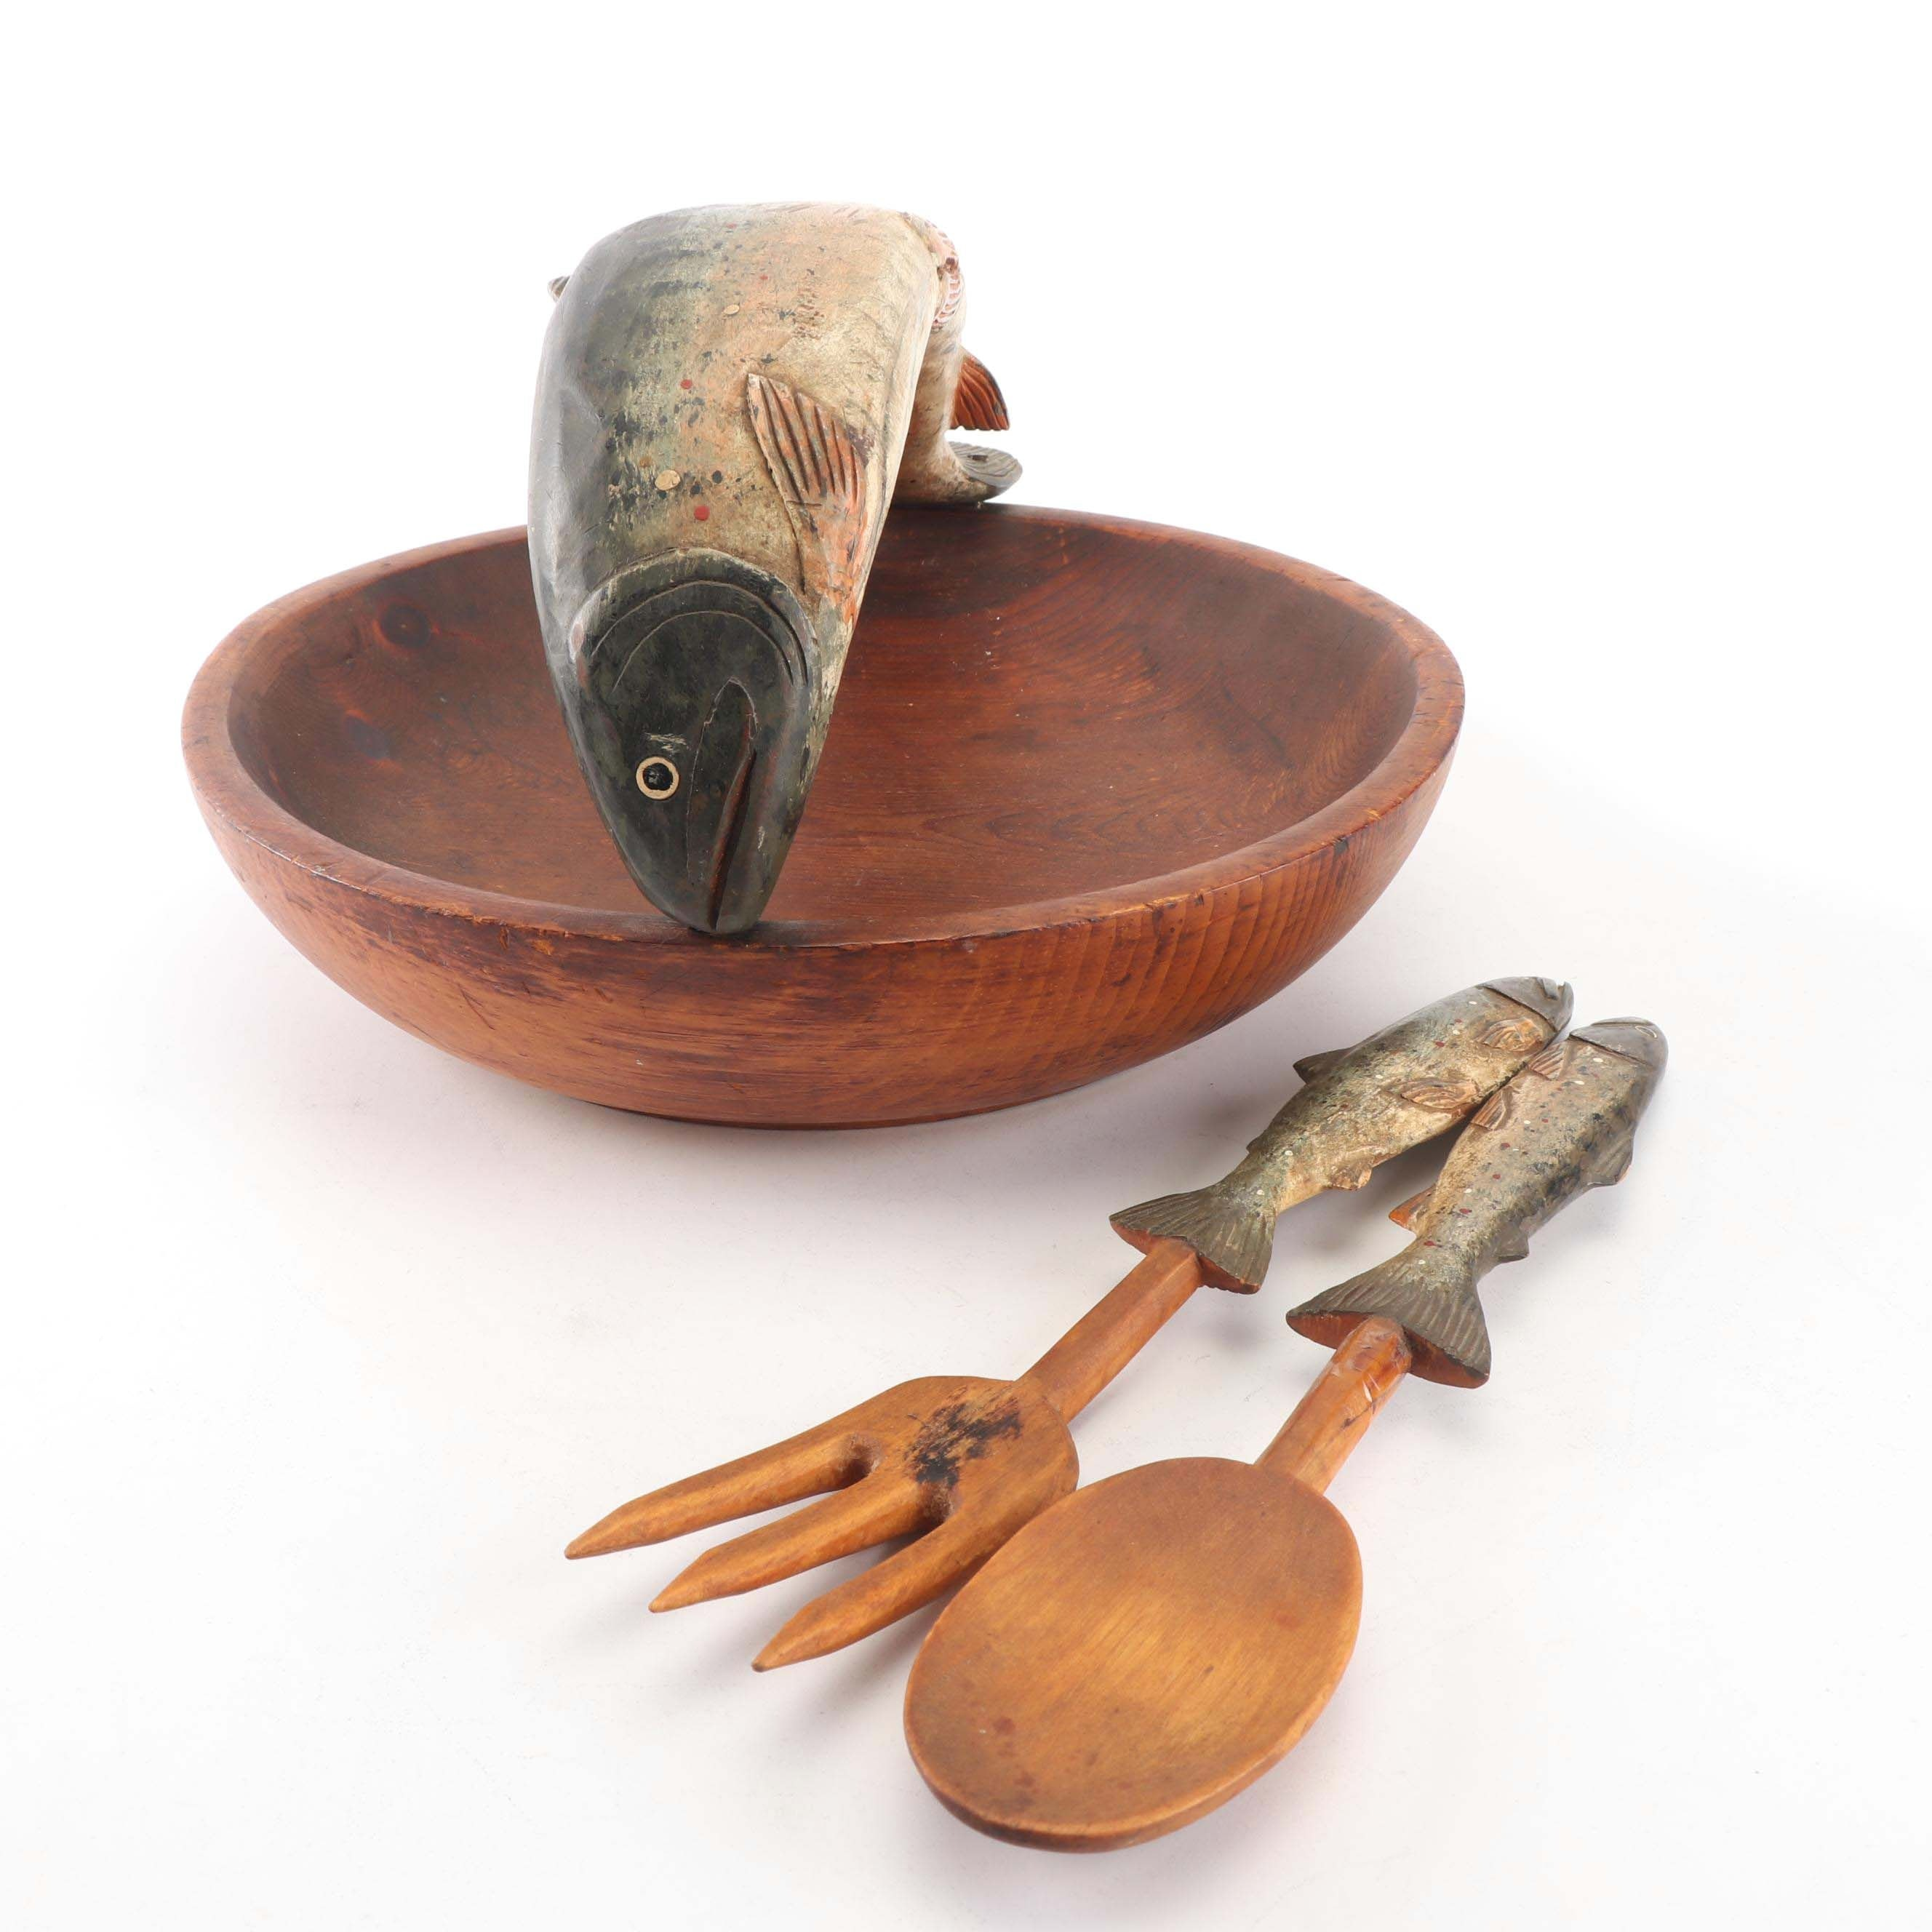 Folk Art Carved Salad Bowl and Utensils, Attributed to Lucien Bouchard c. 1960